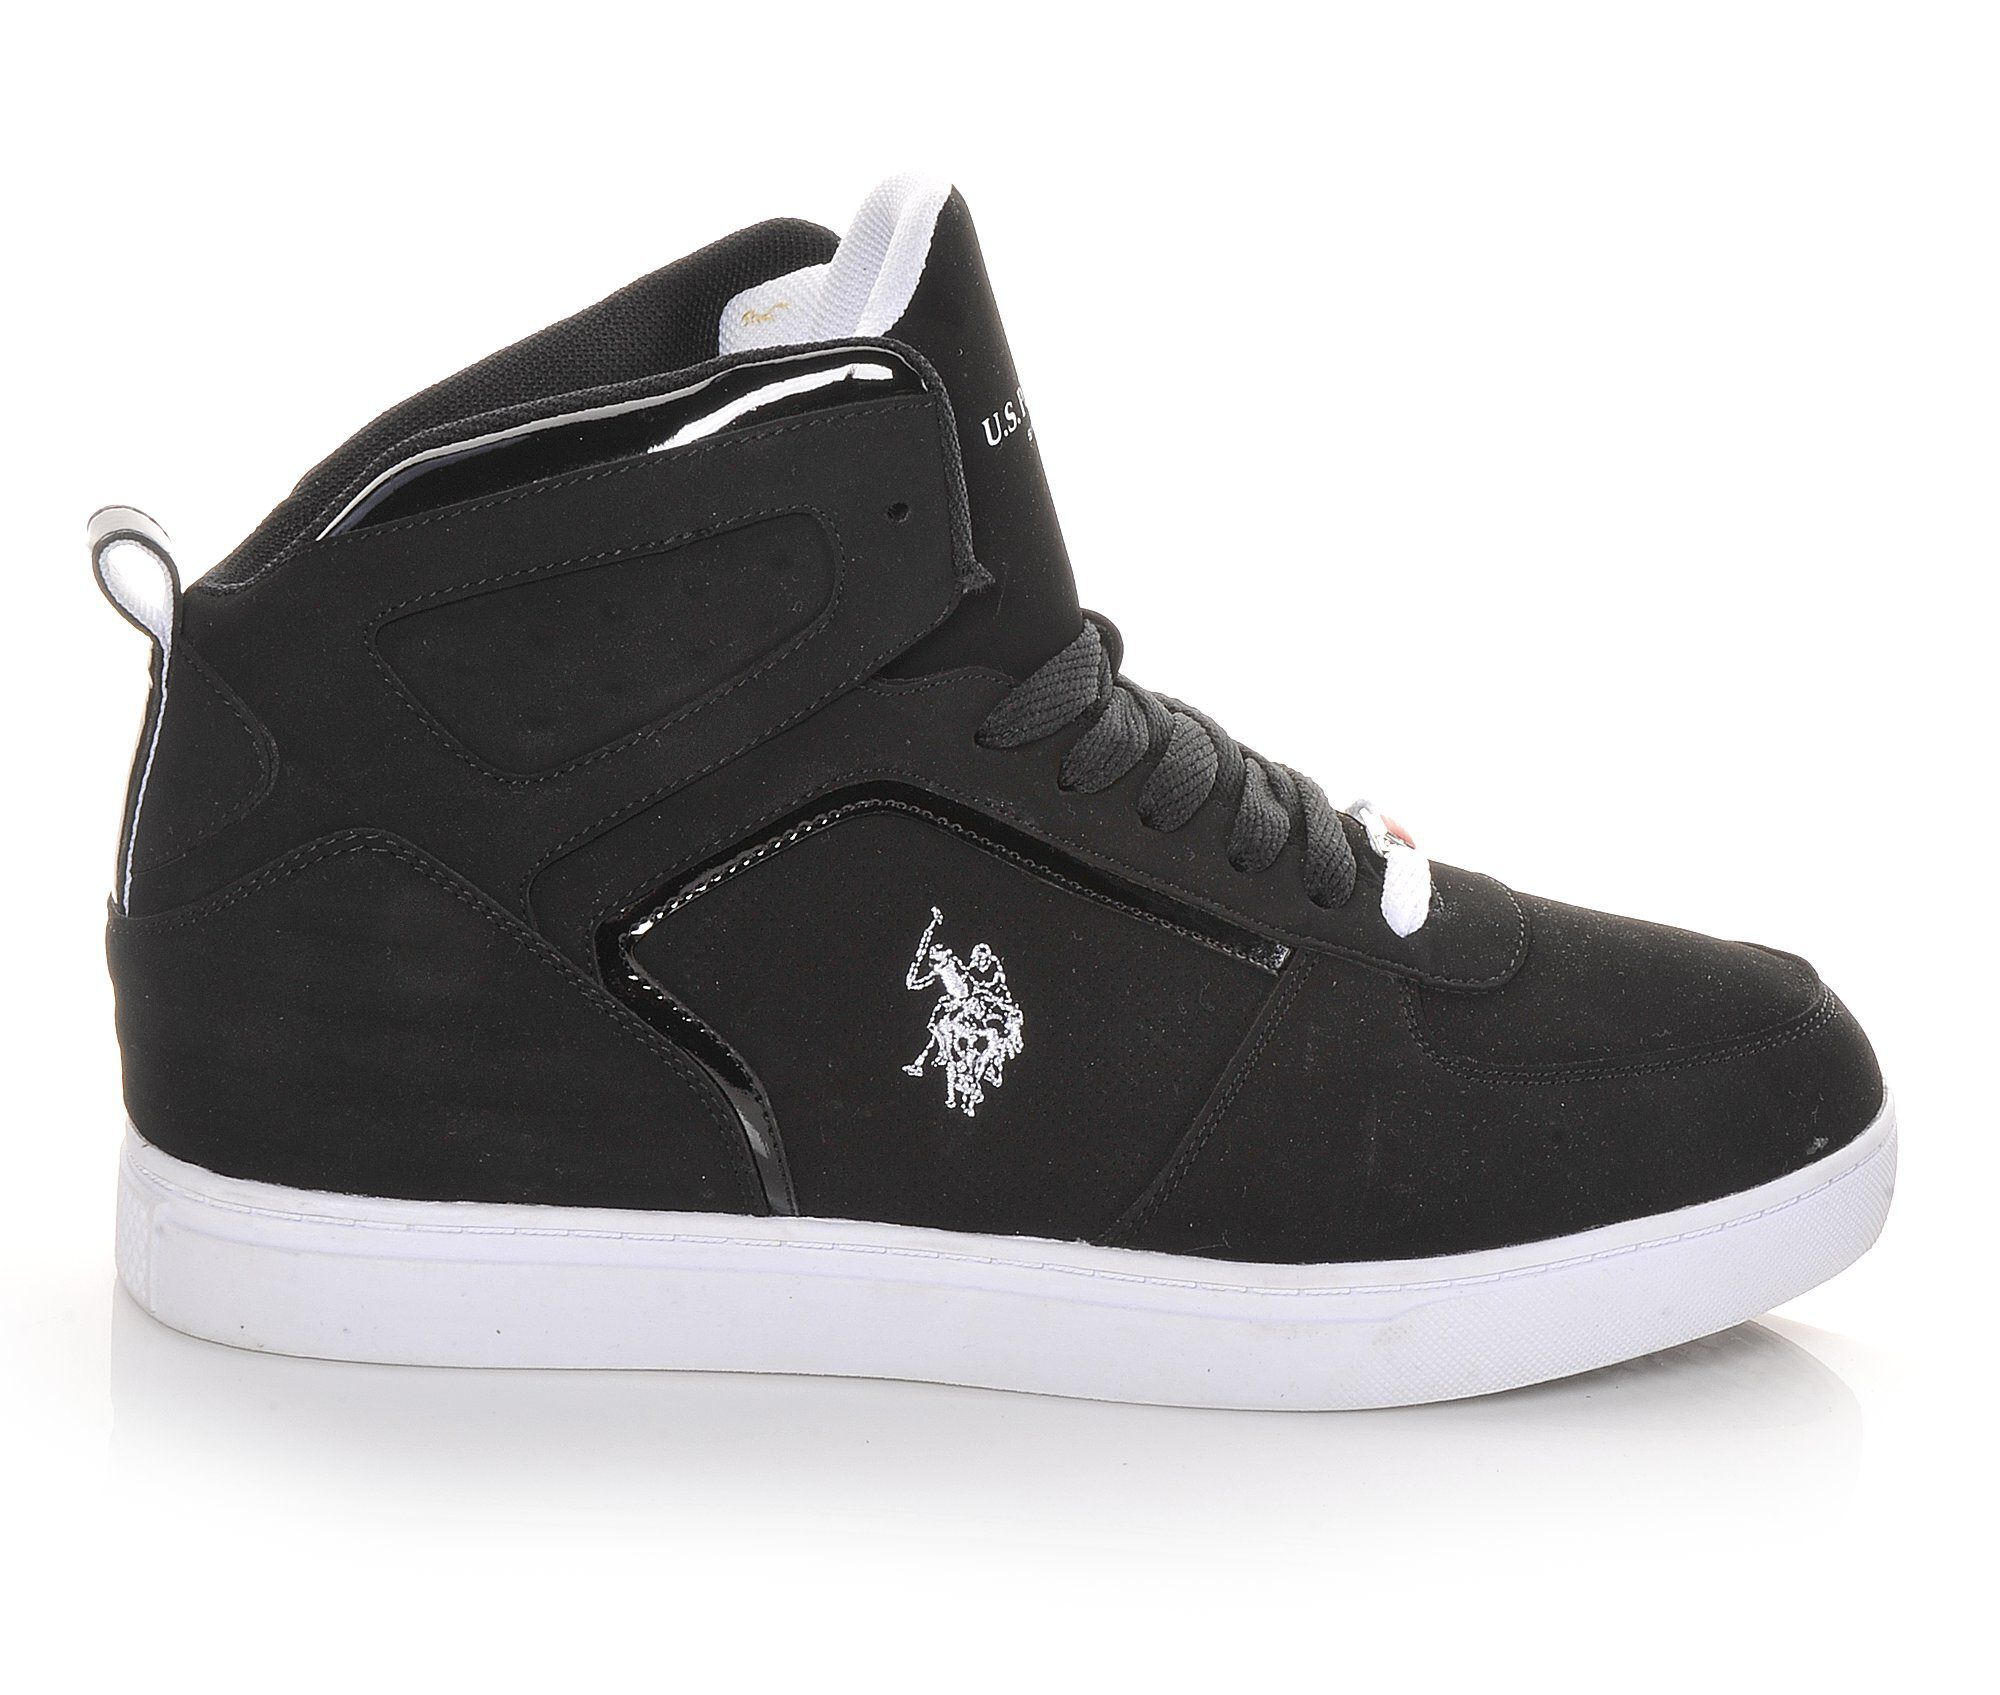 Images. Men\u0026#39;s US Polo Assn Tally Retro Sneakers